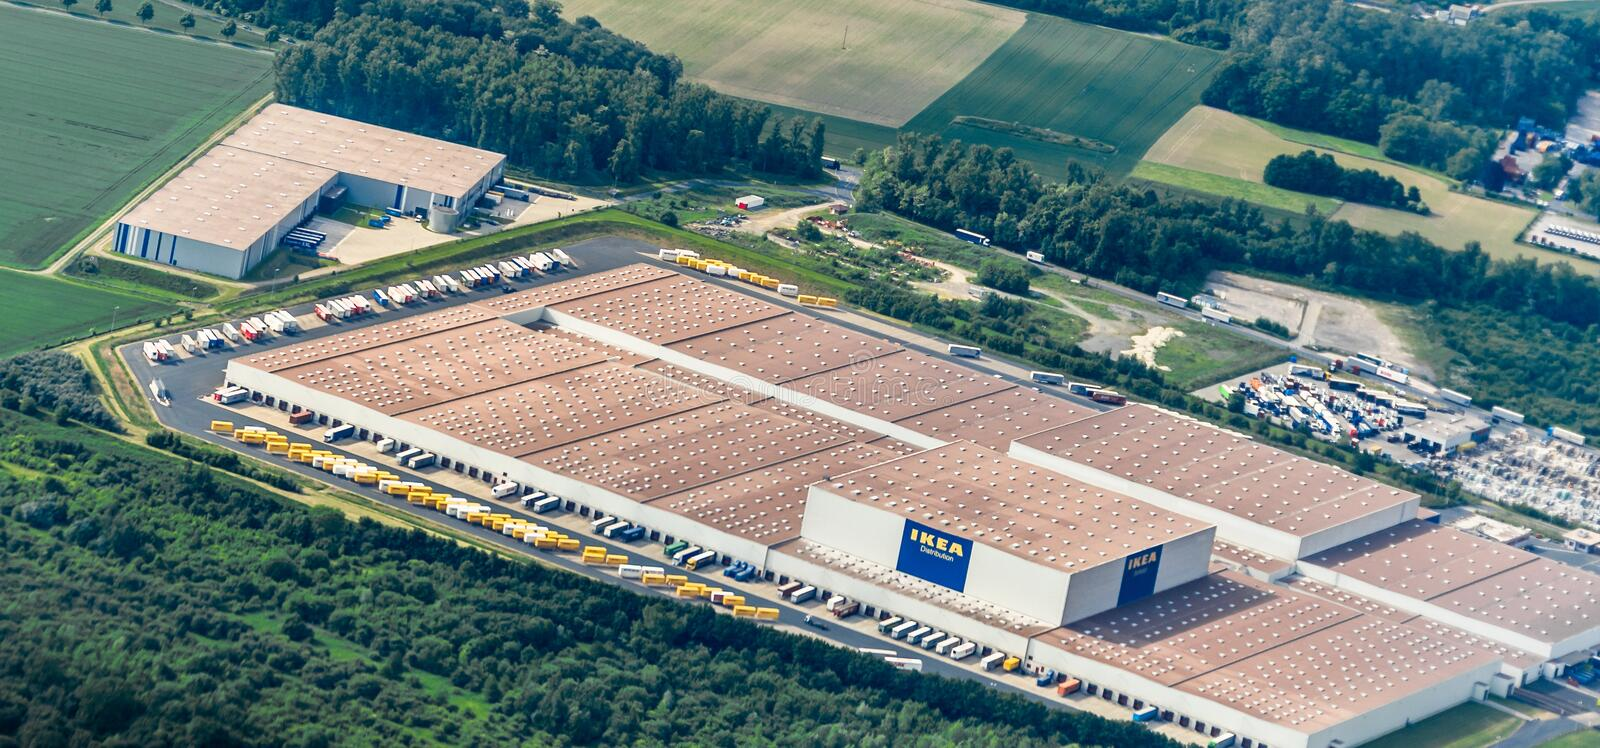 Salzgitter, Lower Saxony, Germany, May 24, 2018: Warehouse of the Swedish furniture store Ikea at the edge of Salzgitter, aerial v stock photo